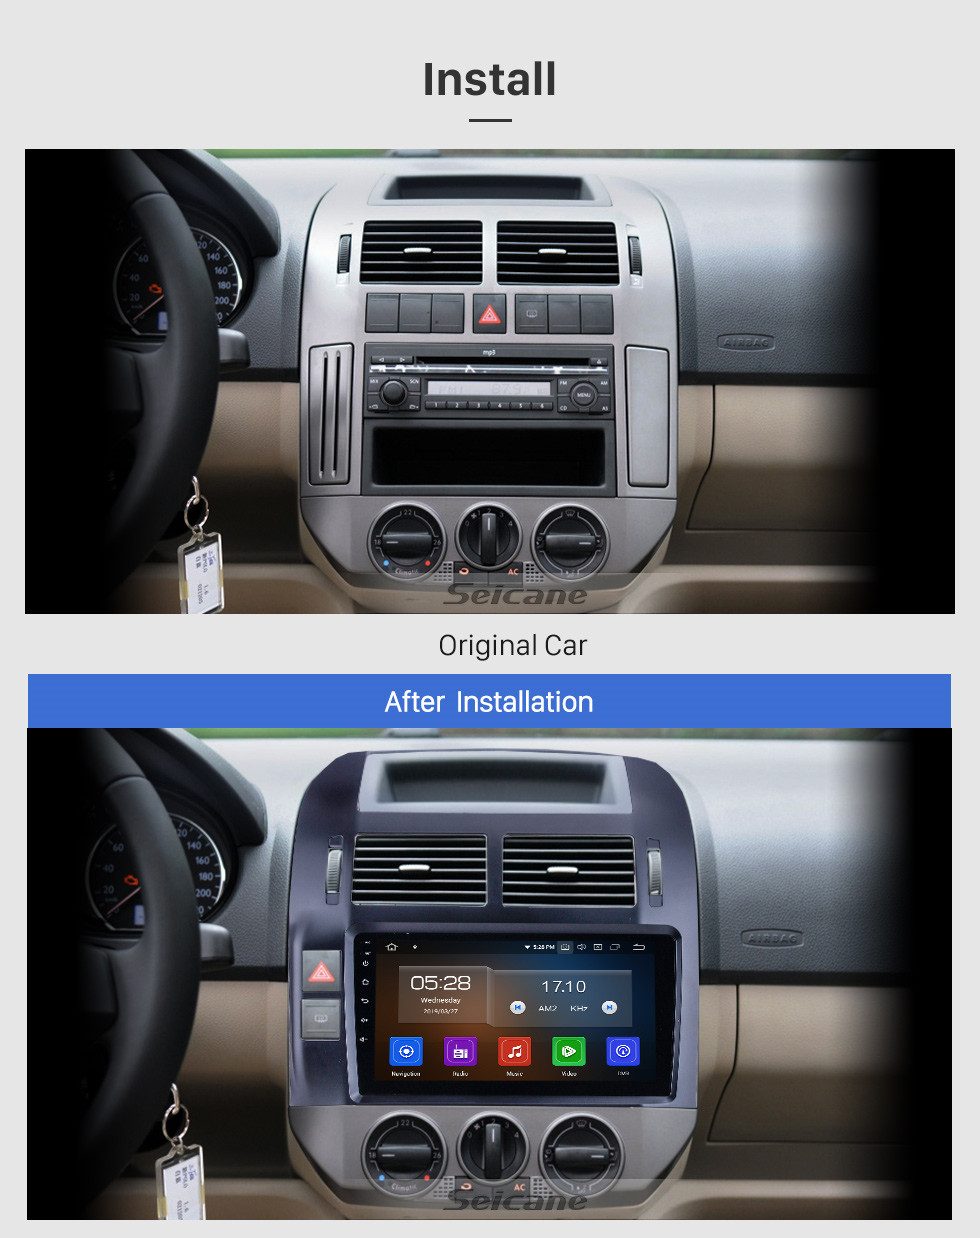 Seicane Android 10.0 For 2004-2009 2010 2011 VW Volkswagen Polo Radio 9 inch GPS Navigation System Bluetooth HD Touchscreen Carplay support DVR